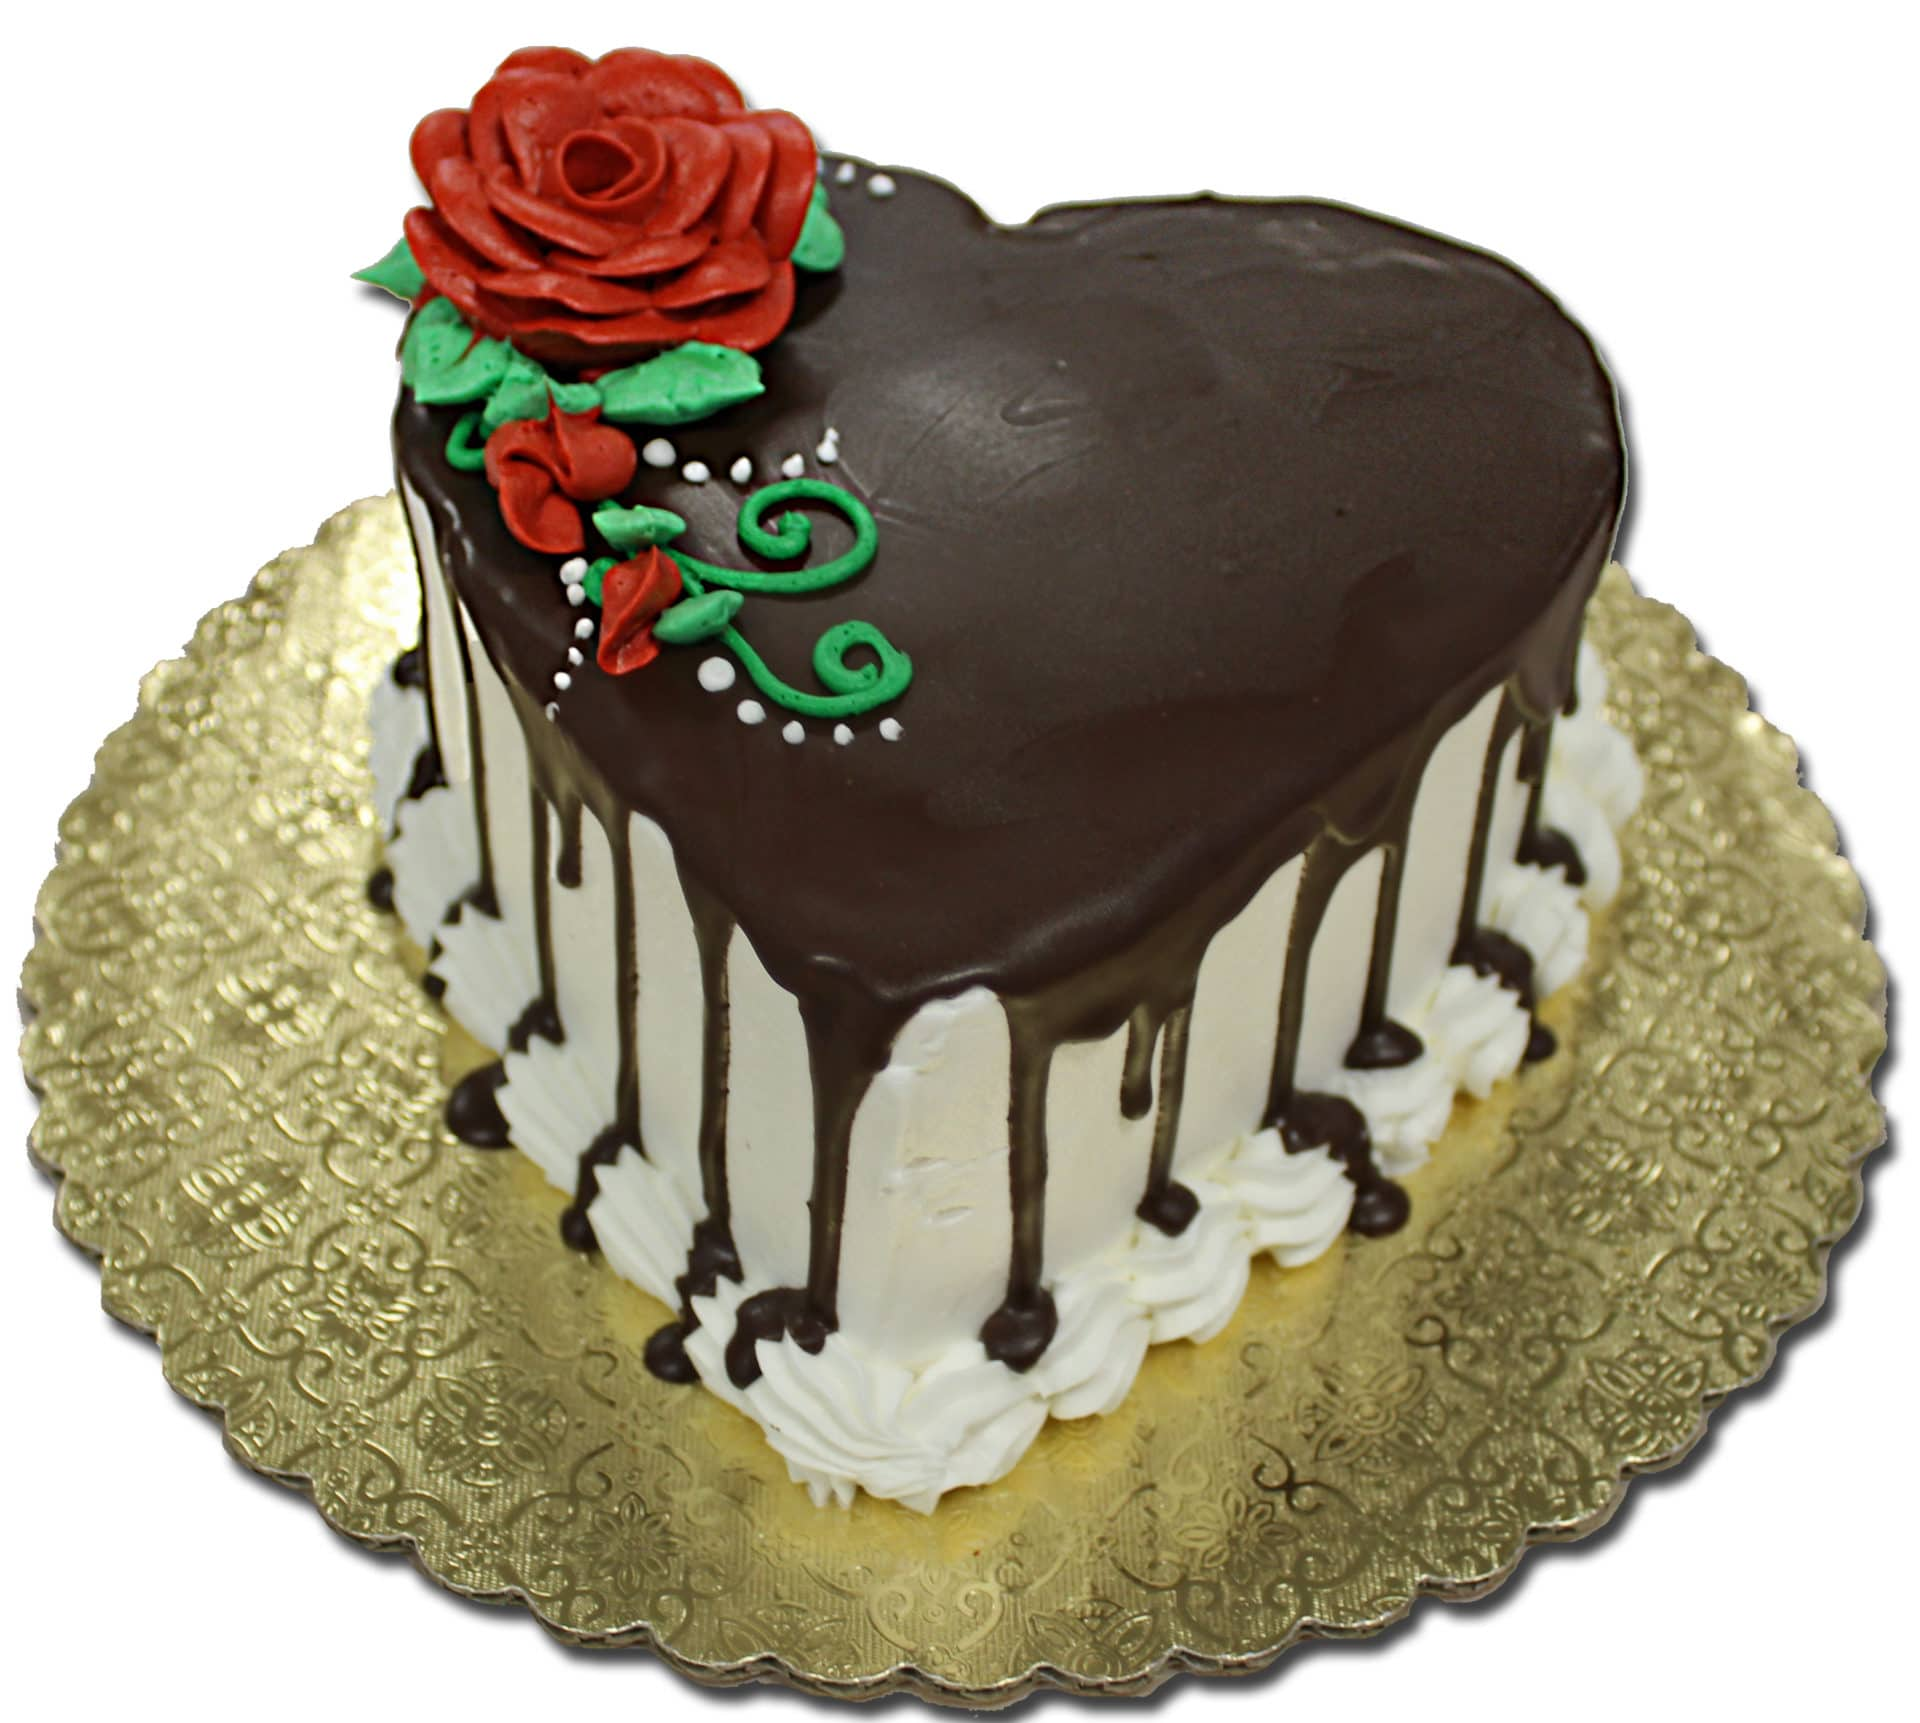 Ganache Poured Chocolate Heart Cake Double Layer Aggies Bakery